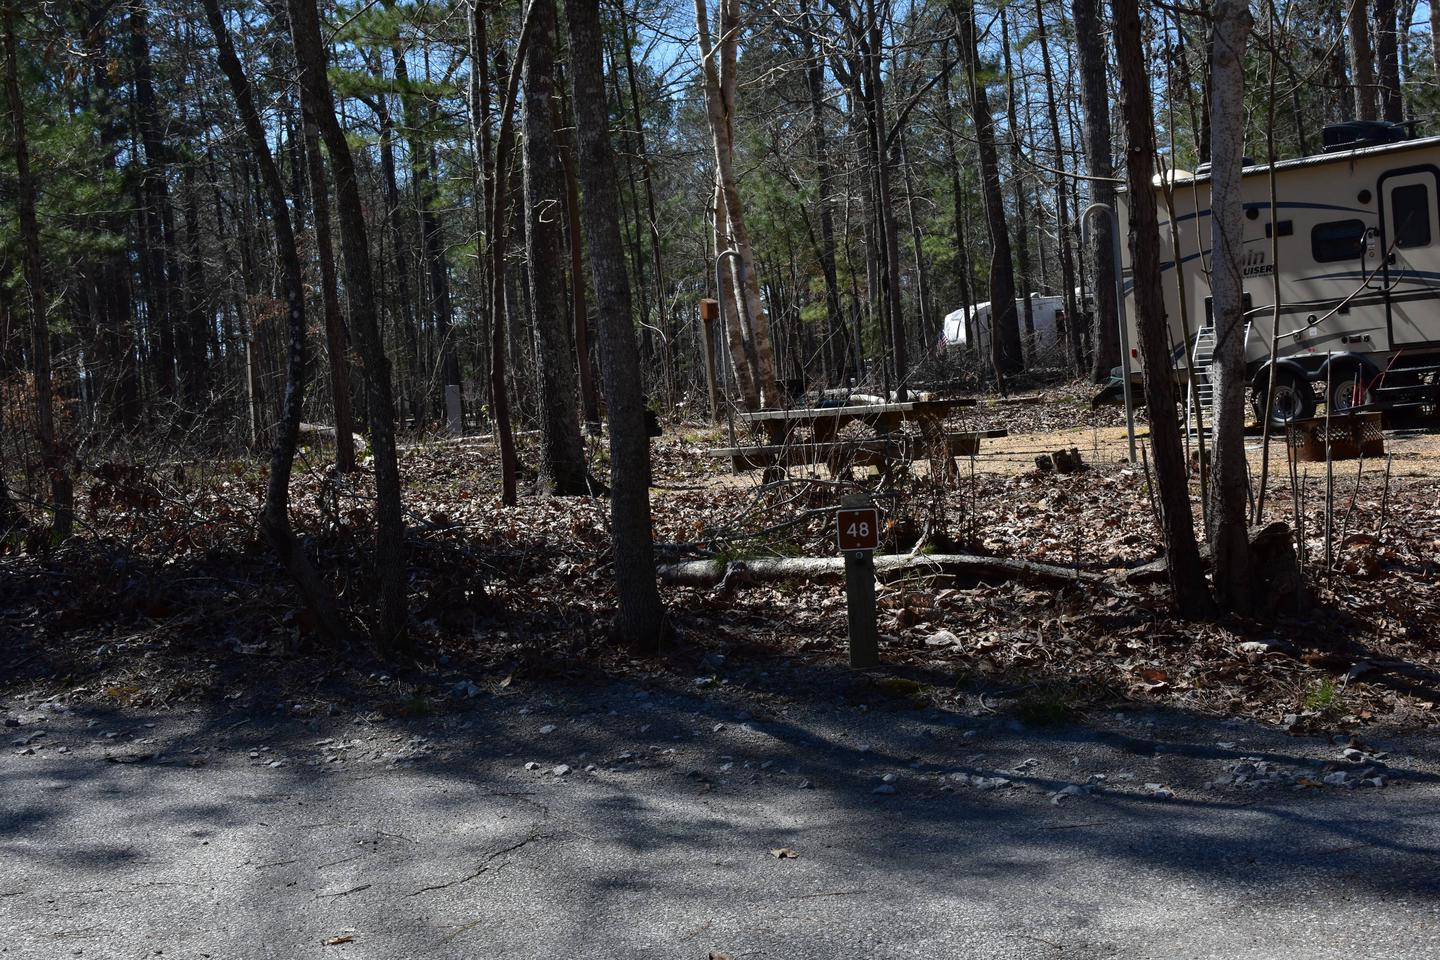 Hoot Owl Site 48-2Hoot Owl Site 48, March 6, 2020